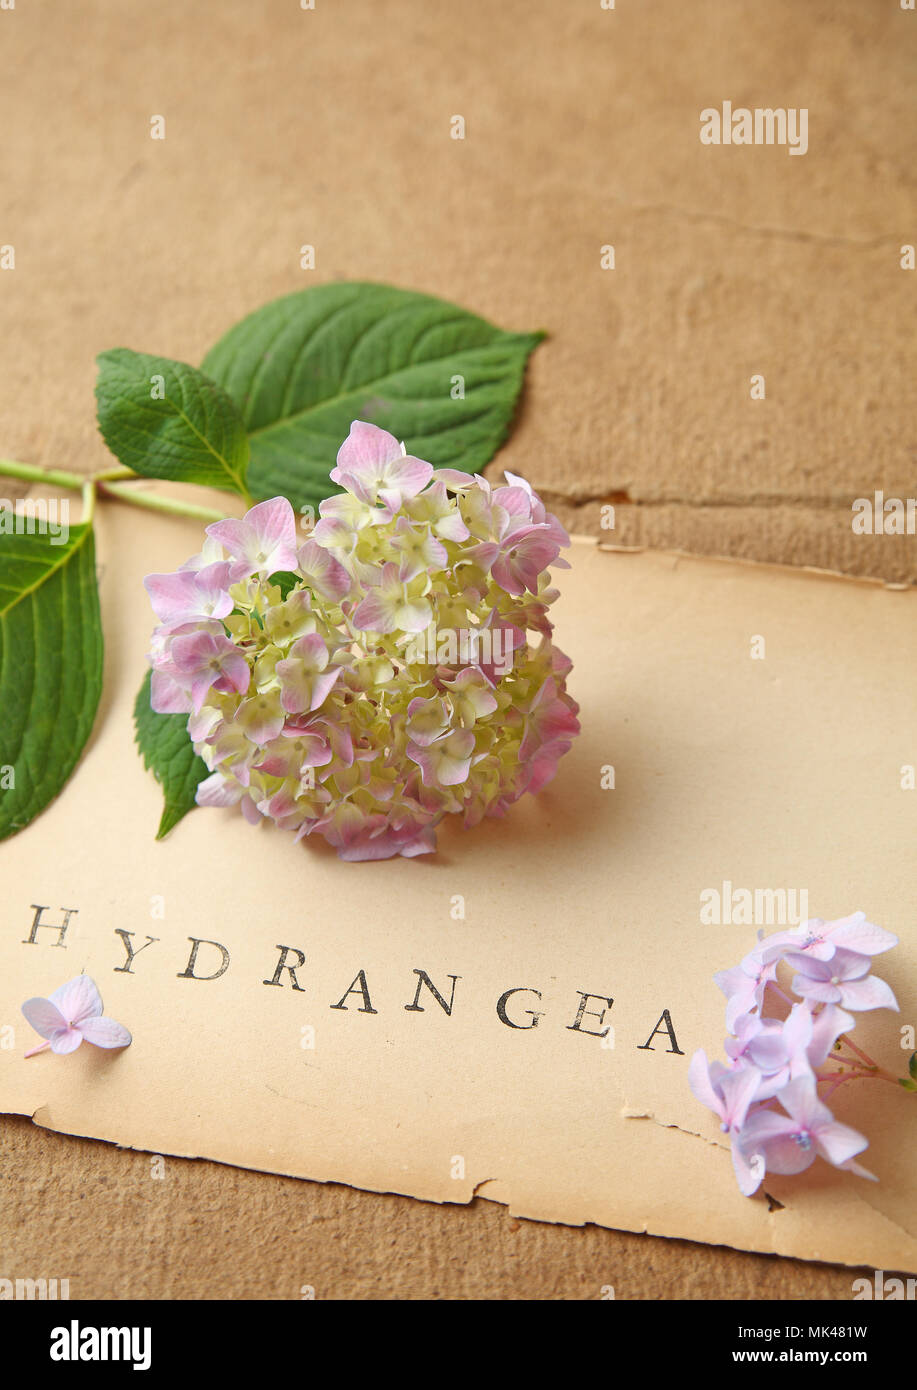 Fresh hydrangea flowers and stamped word on vintage book pages and cover textures with room for additional text - Stock Image